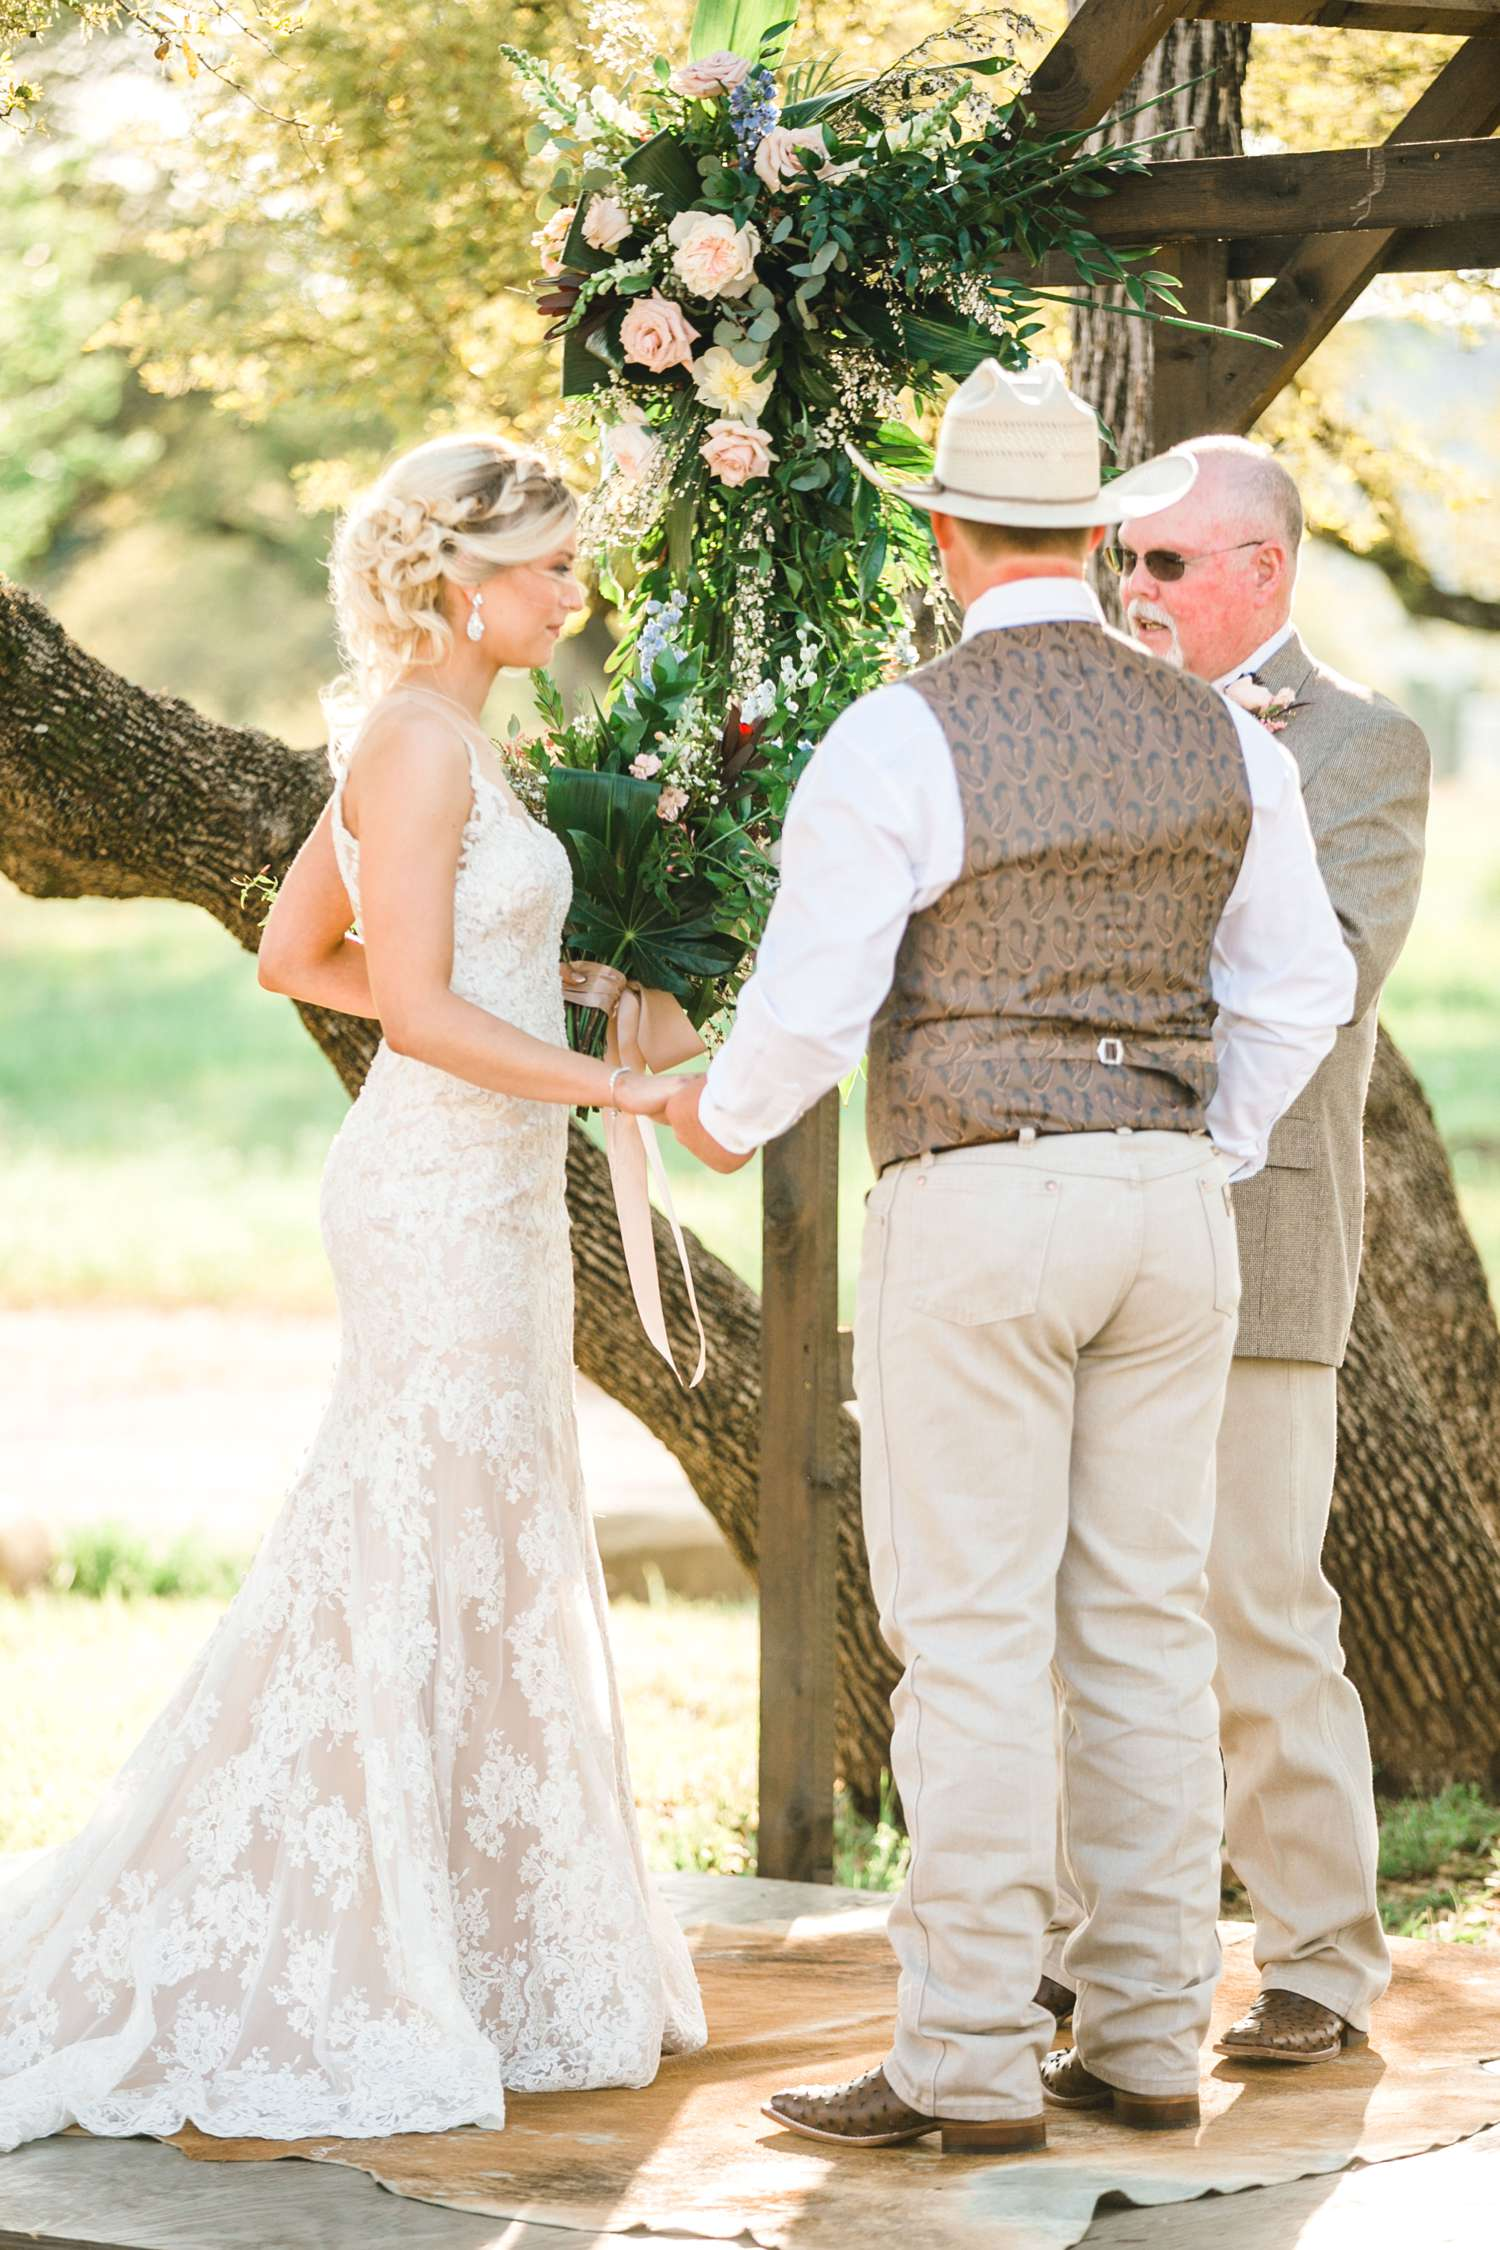 SARAH+TREVOR+BADGETT+SPARROW+CREEK+GRAHAM+TEXAS+ALLEEJ+WEDDINGS_0063.jpg